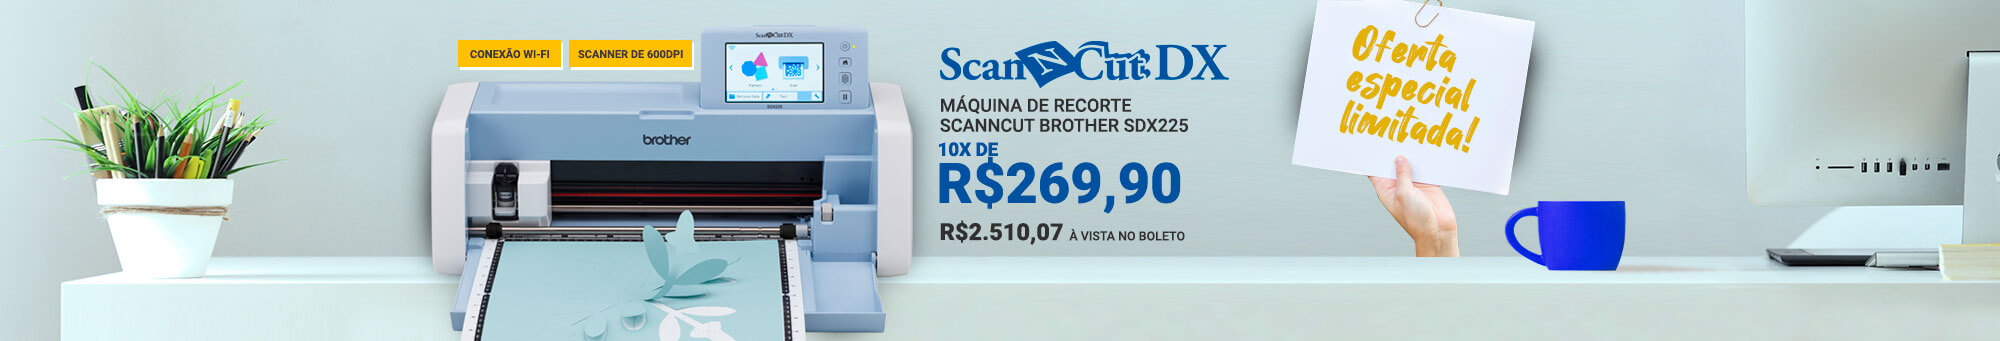 SCANNCUT BROTHER SDX225 - R$2699